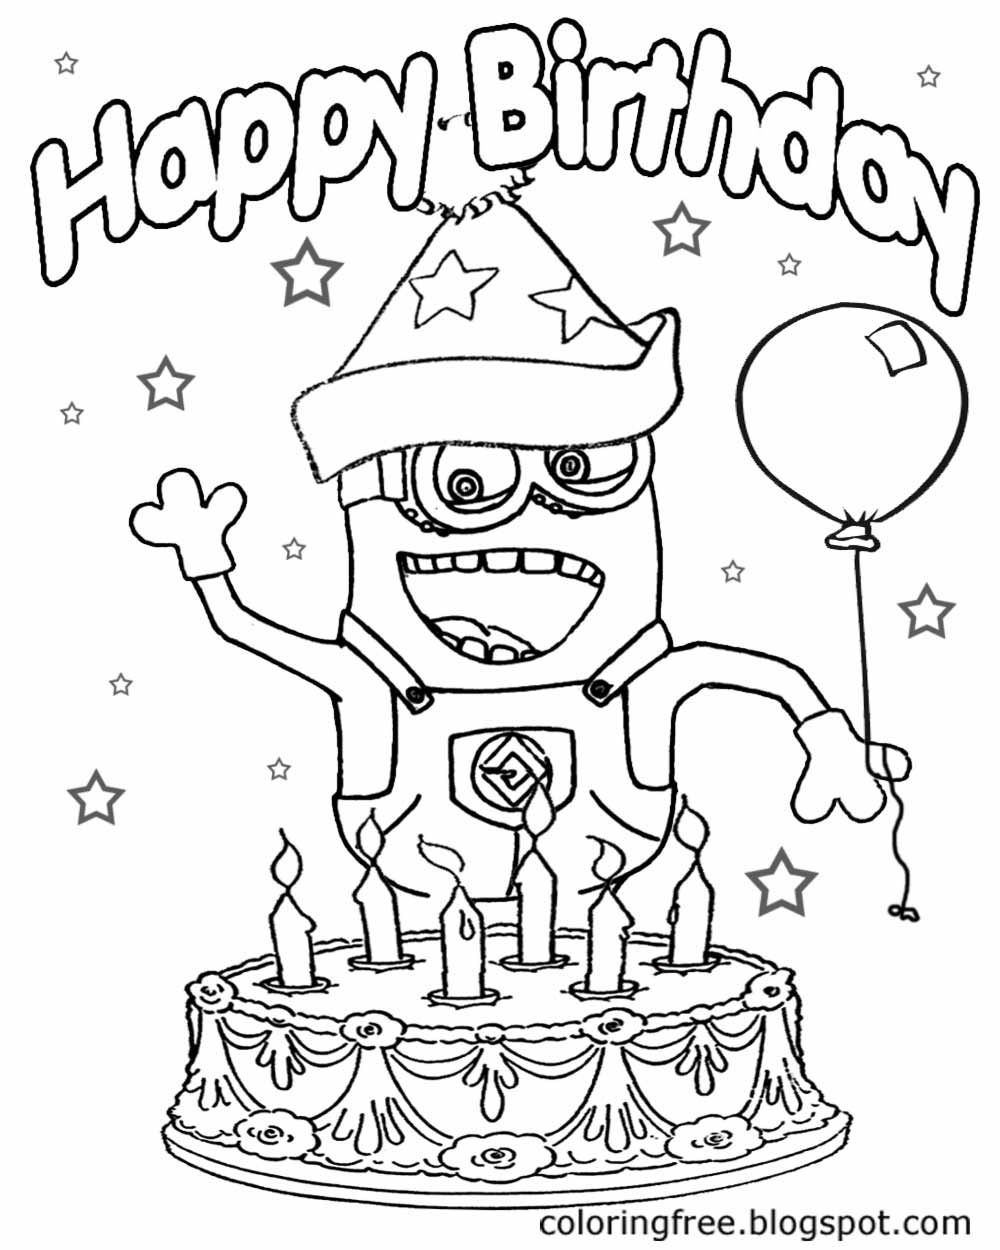 Minion Birthday Coloring Pages Coloring Pages Allow Kids To Accompany Their Favo Happy Birthday Coloring Pages Birthday Coloring Pages Minion Coloring Pages